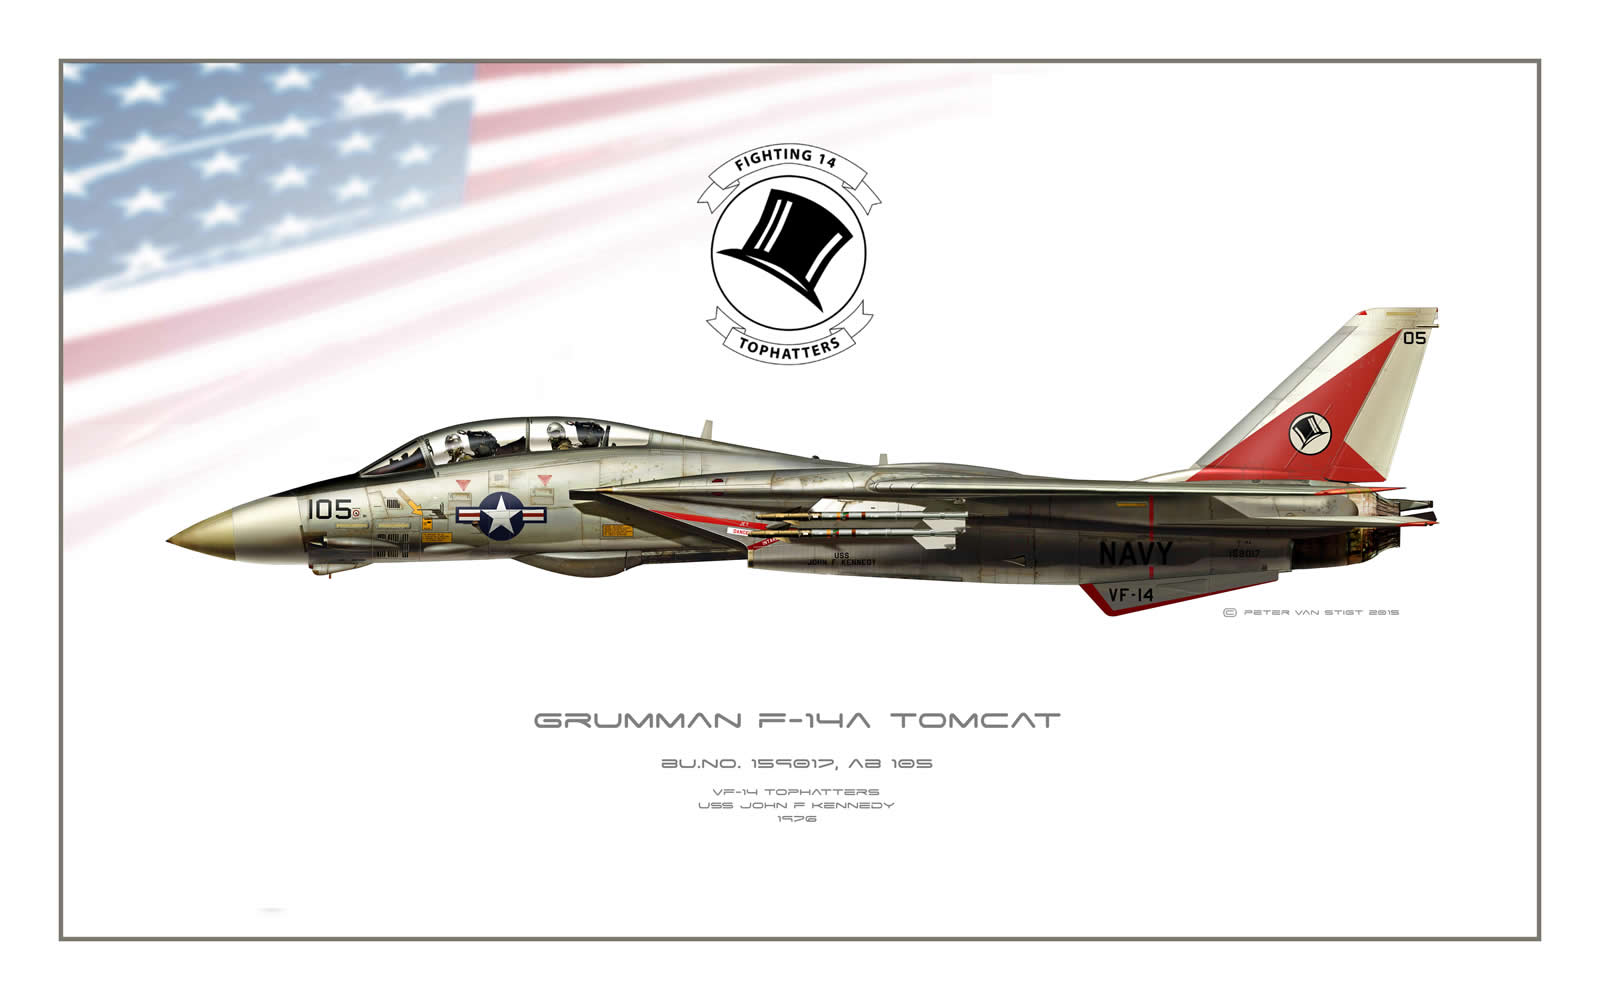 VF-14 Tophatters F-14 Tomcat Profile